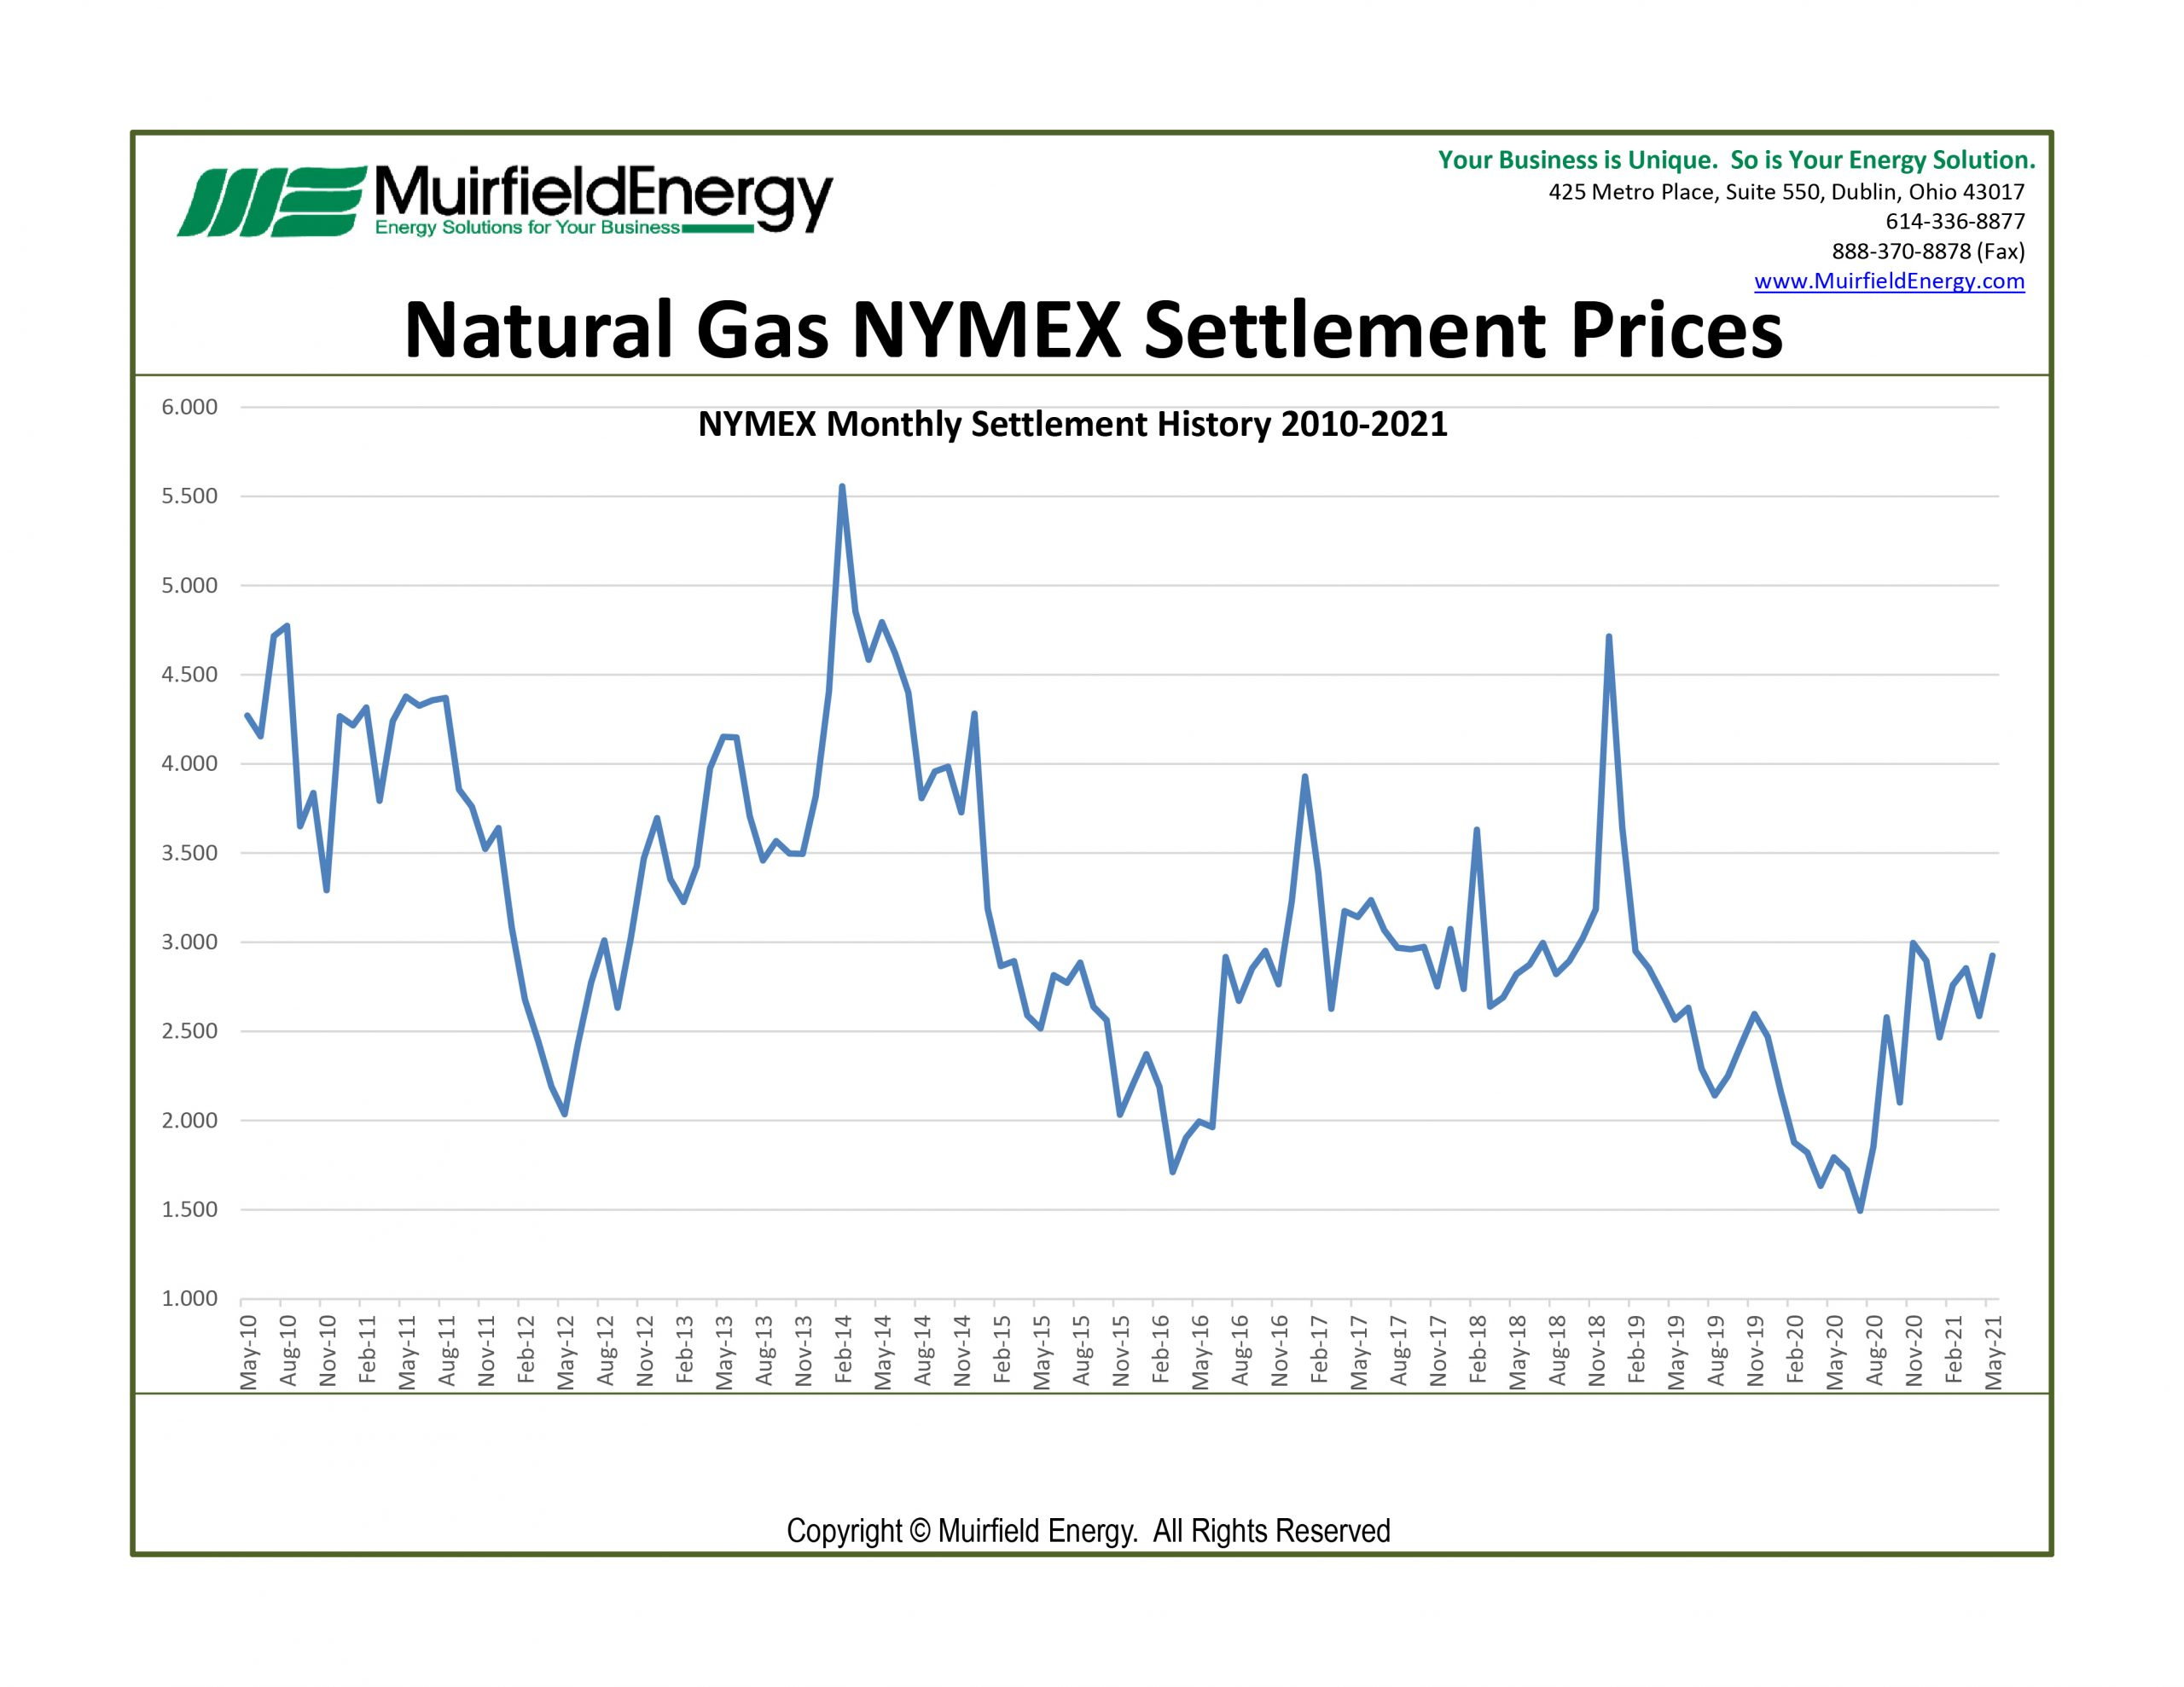 NYMEX-Natural-Gas-Futures-for-May-2021-settled-at-$2.925